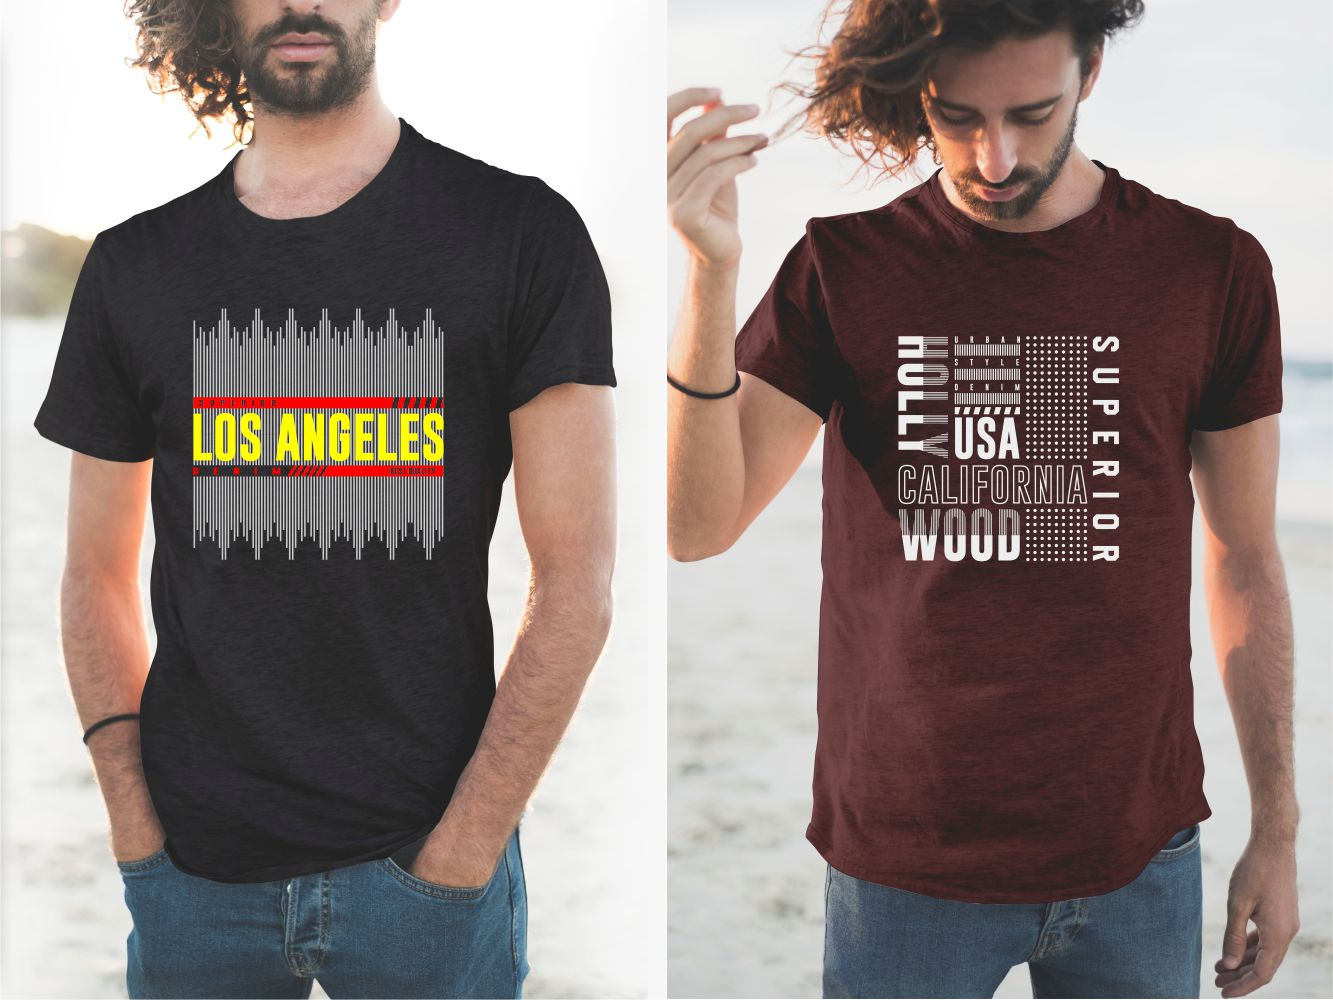 Burgundy and black T-shirt with unusual graphics.